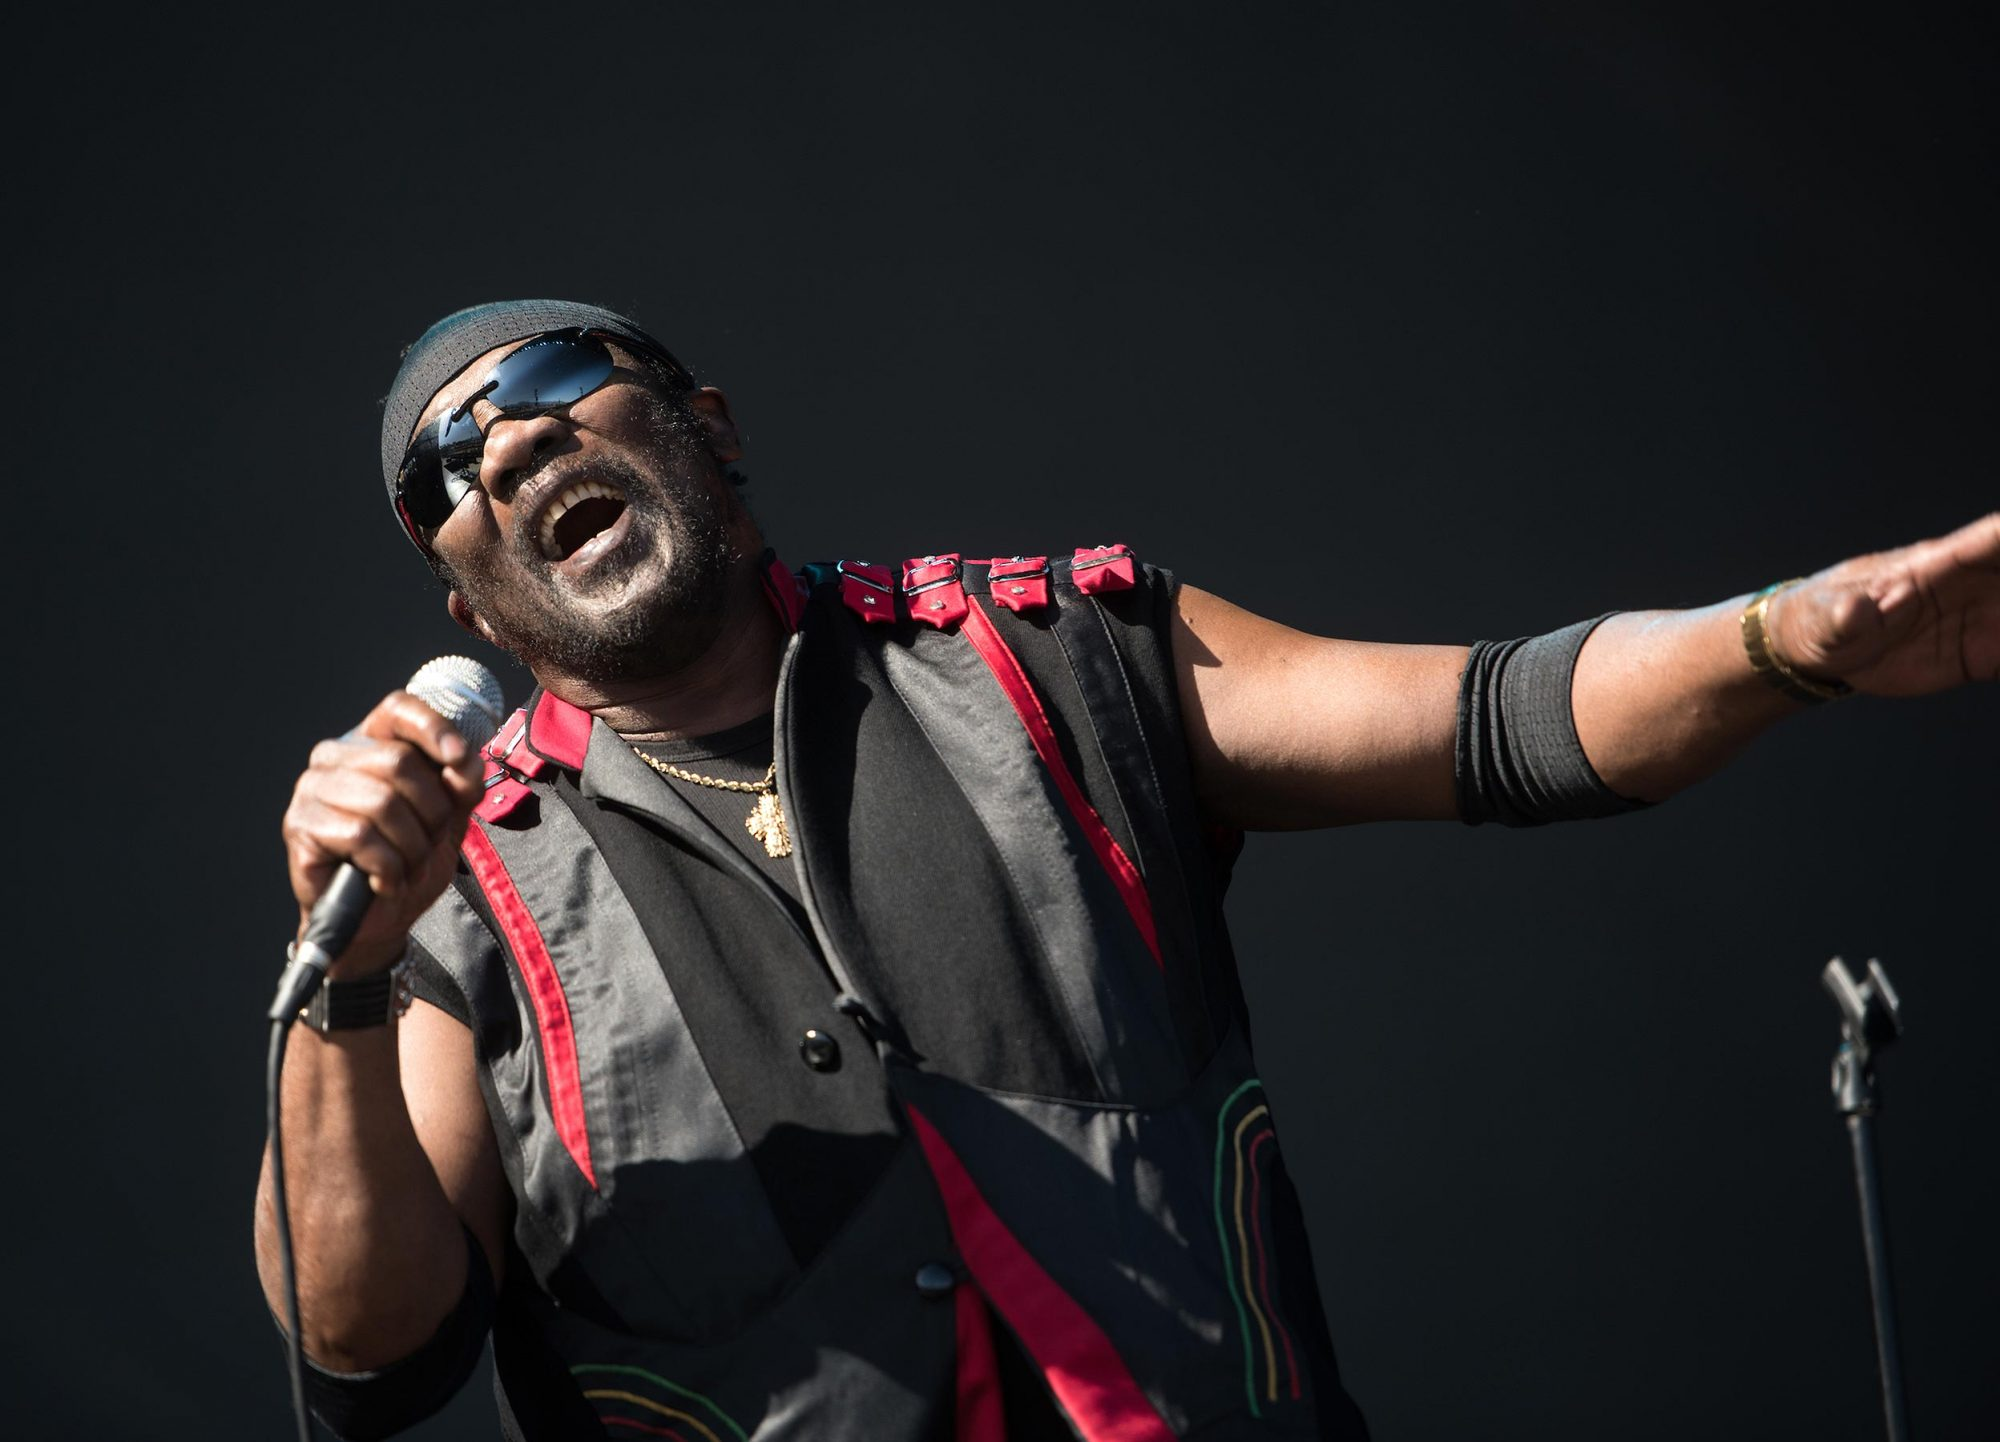 Toots-&-The-Maytals_Chris-Miller_Coachella_G0290058